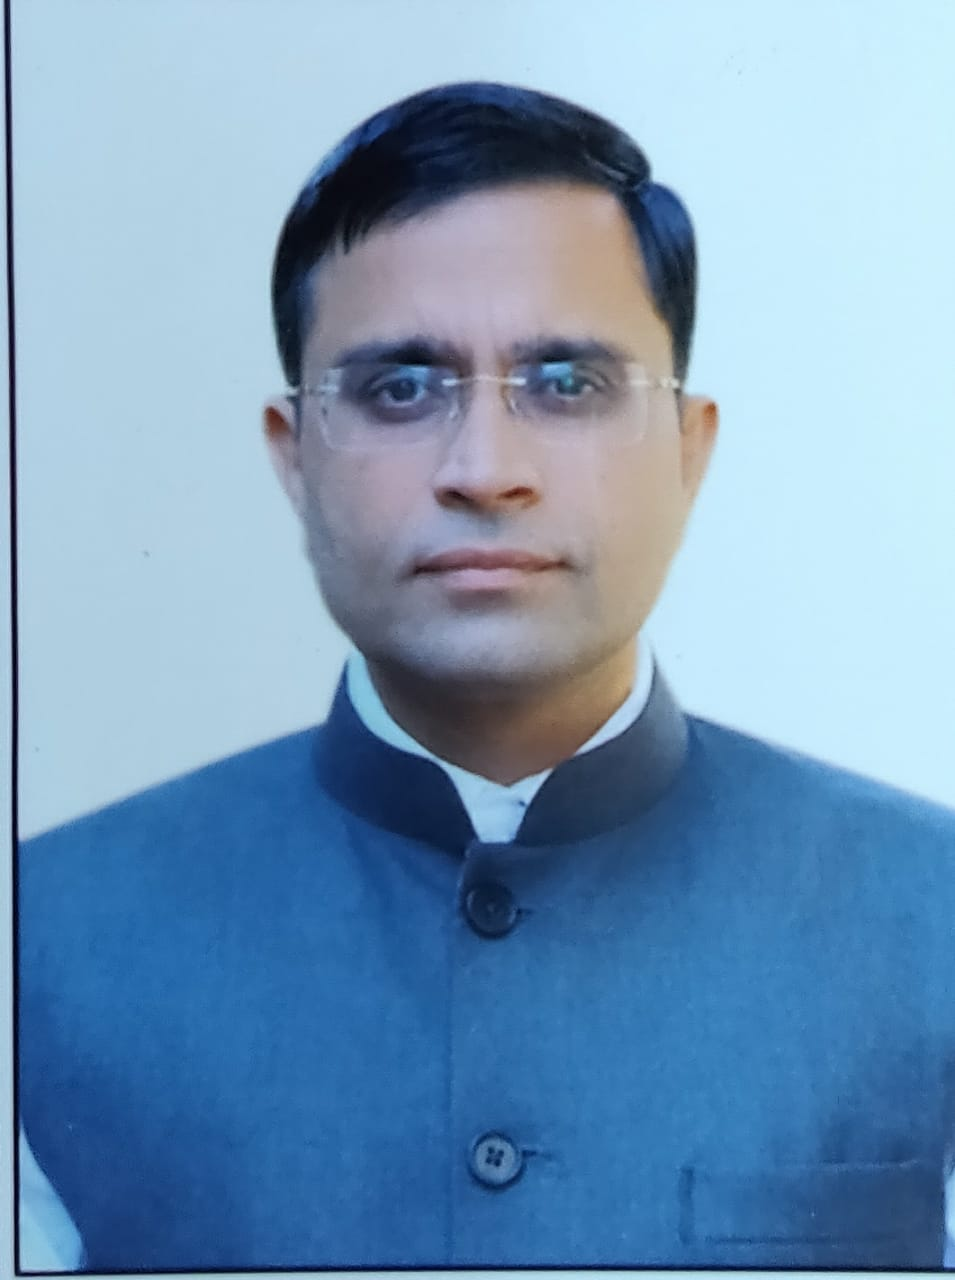 Shri Sunil Beniwal , Bar Council of Rajasthan, Jodhpur